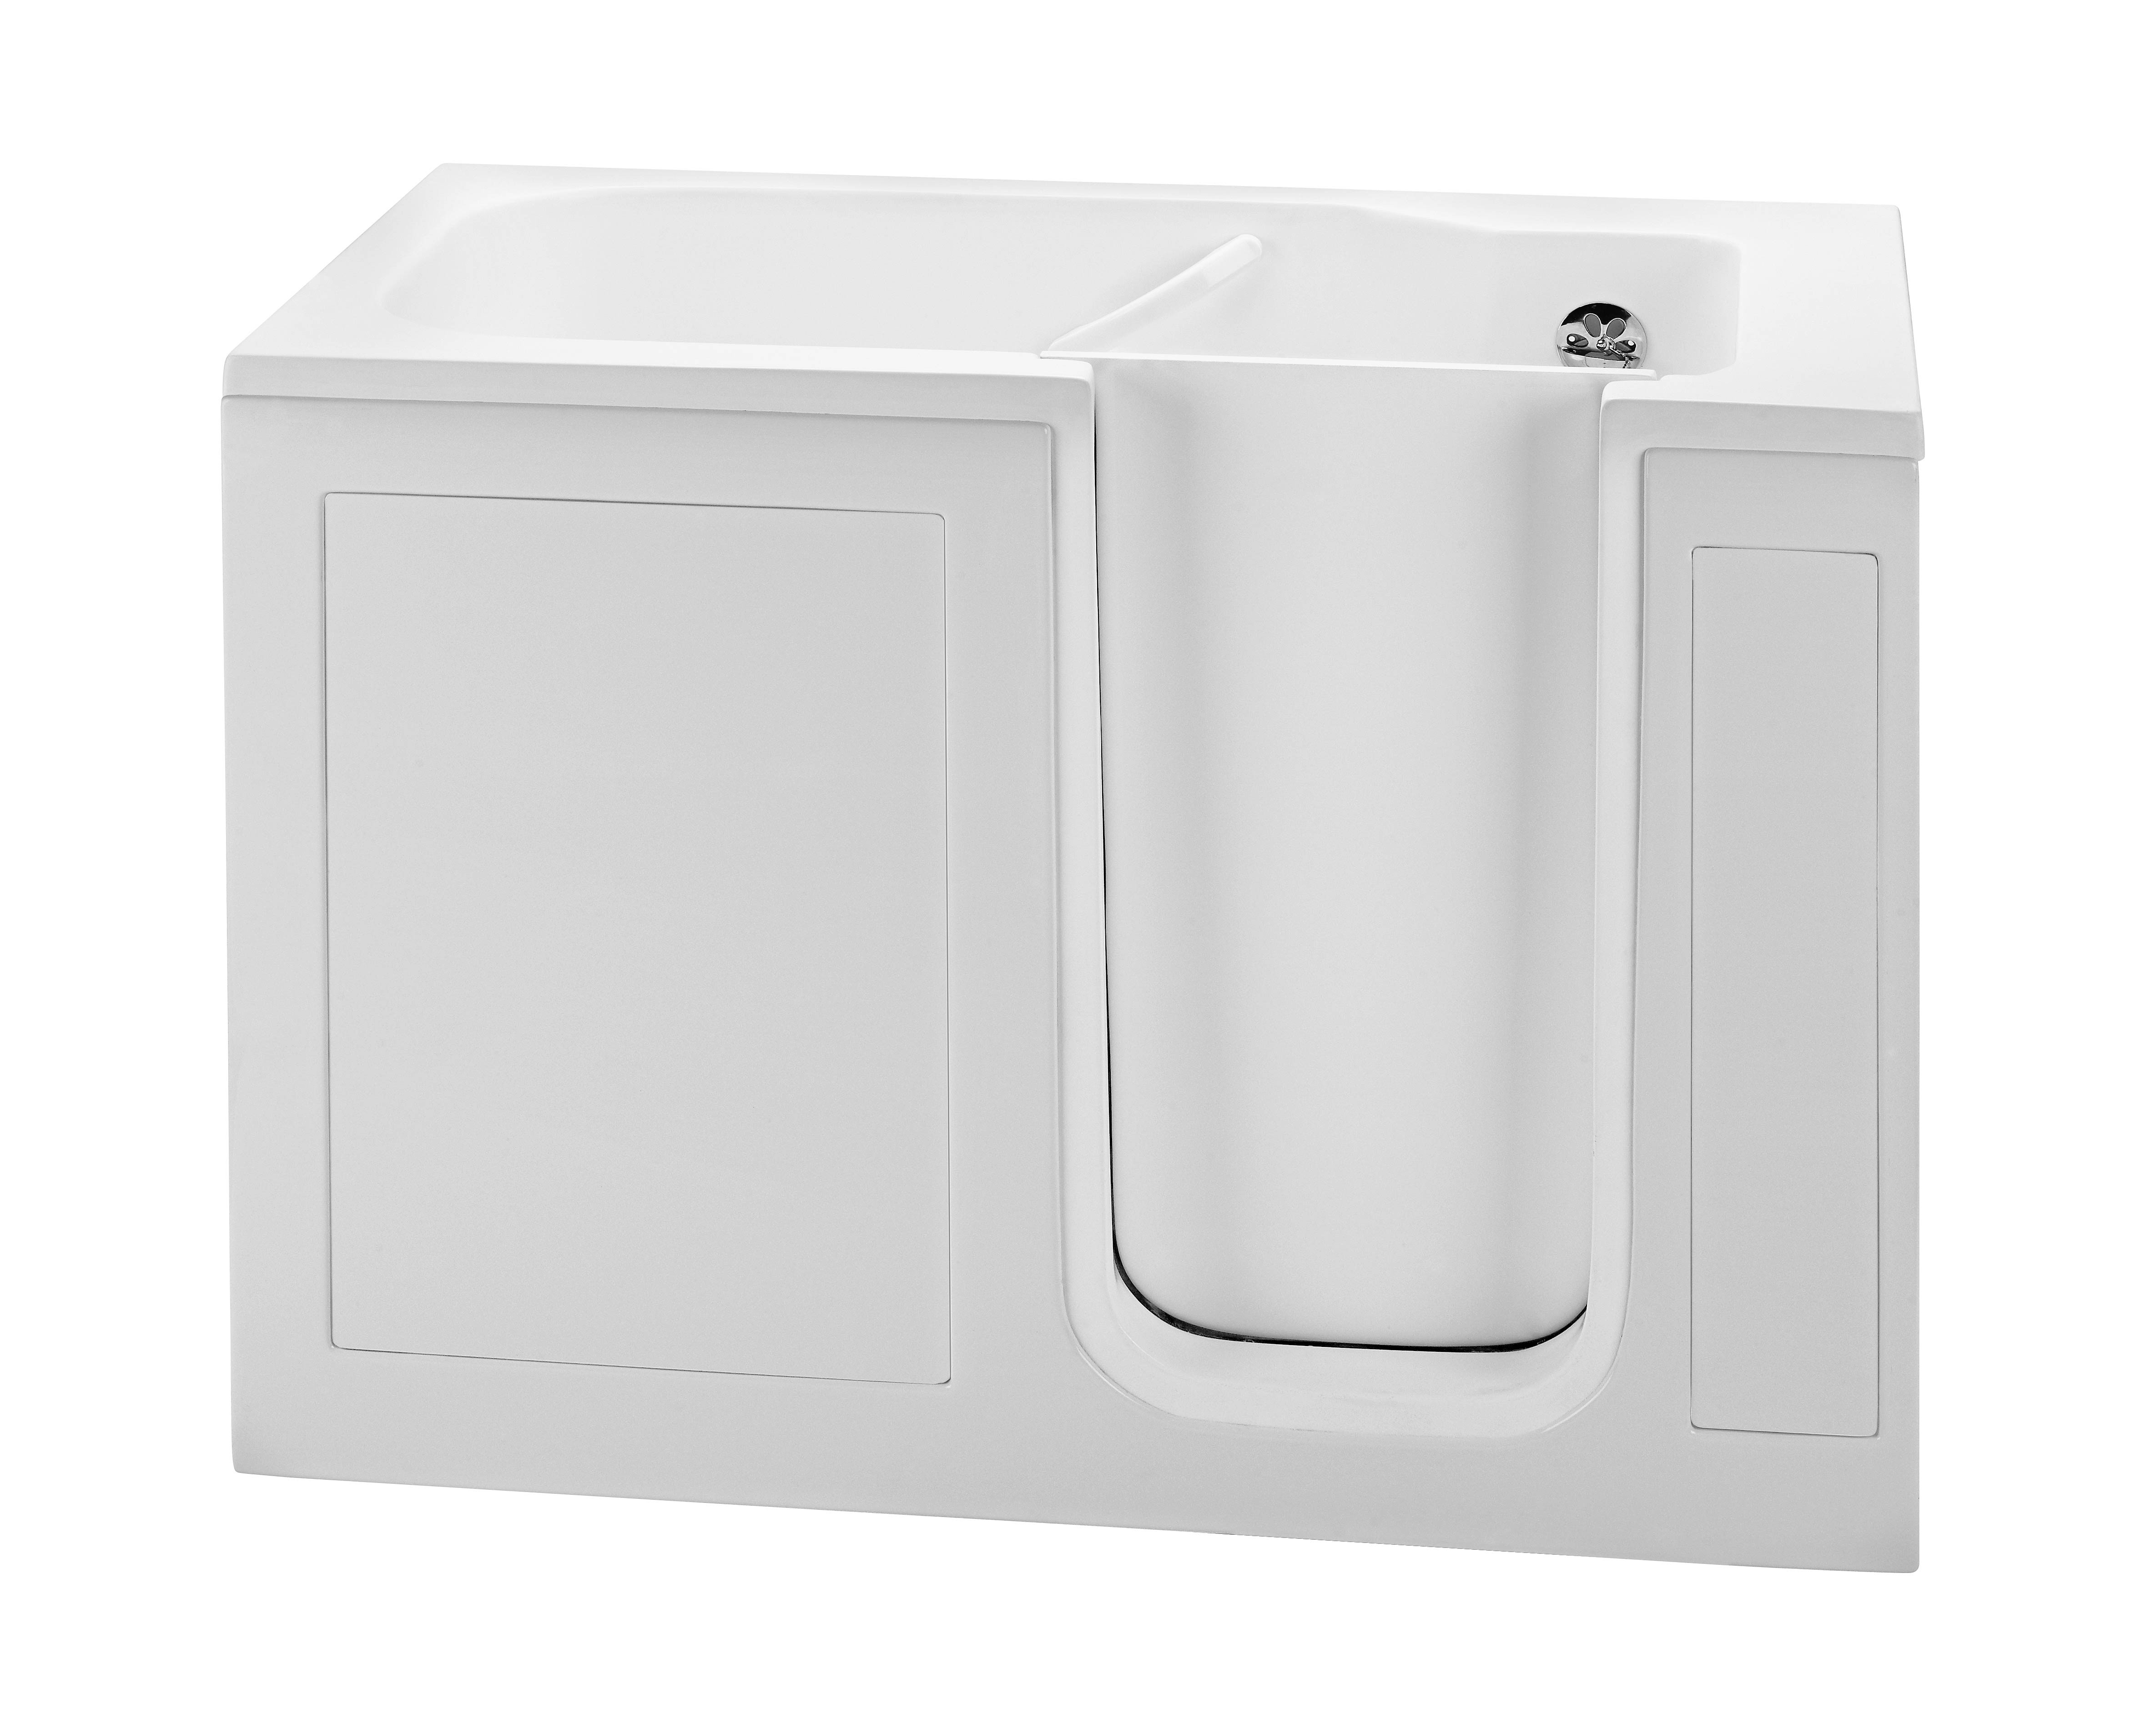 Reliance RWI5030NVW 51.5 Inch Walk in Whirlpool Bath-No Valves-Biscuit